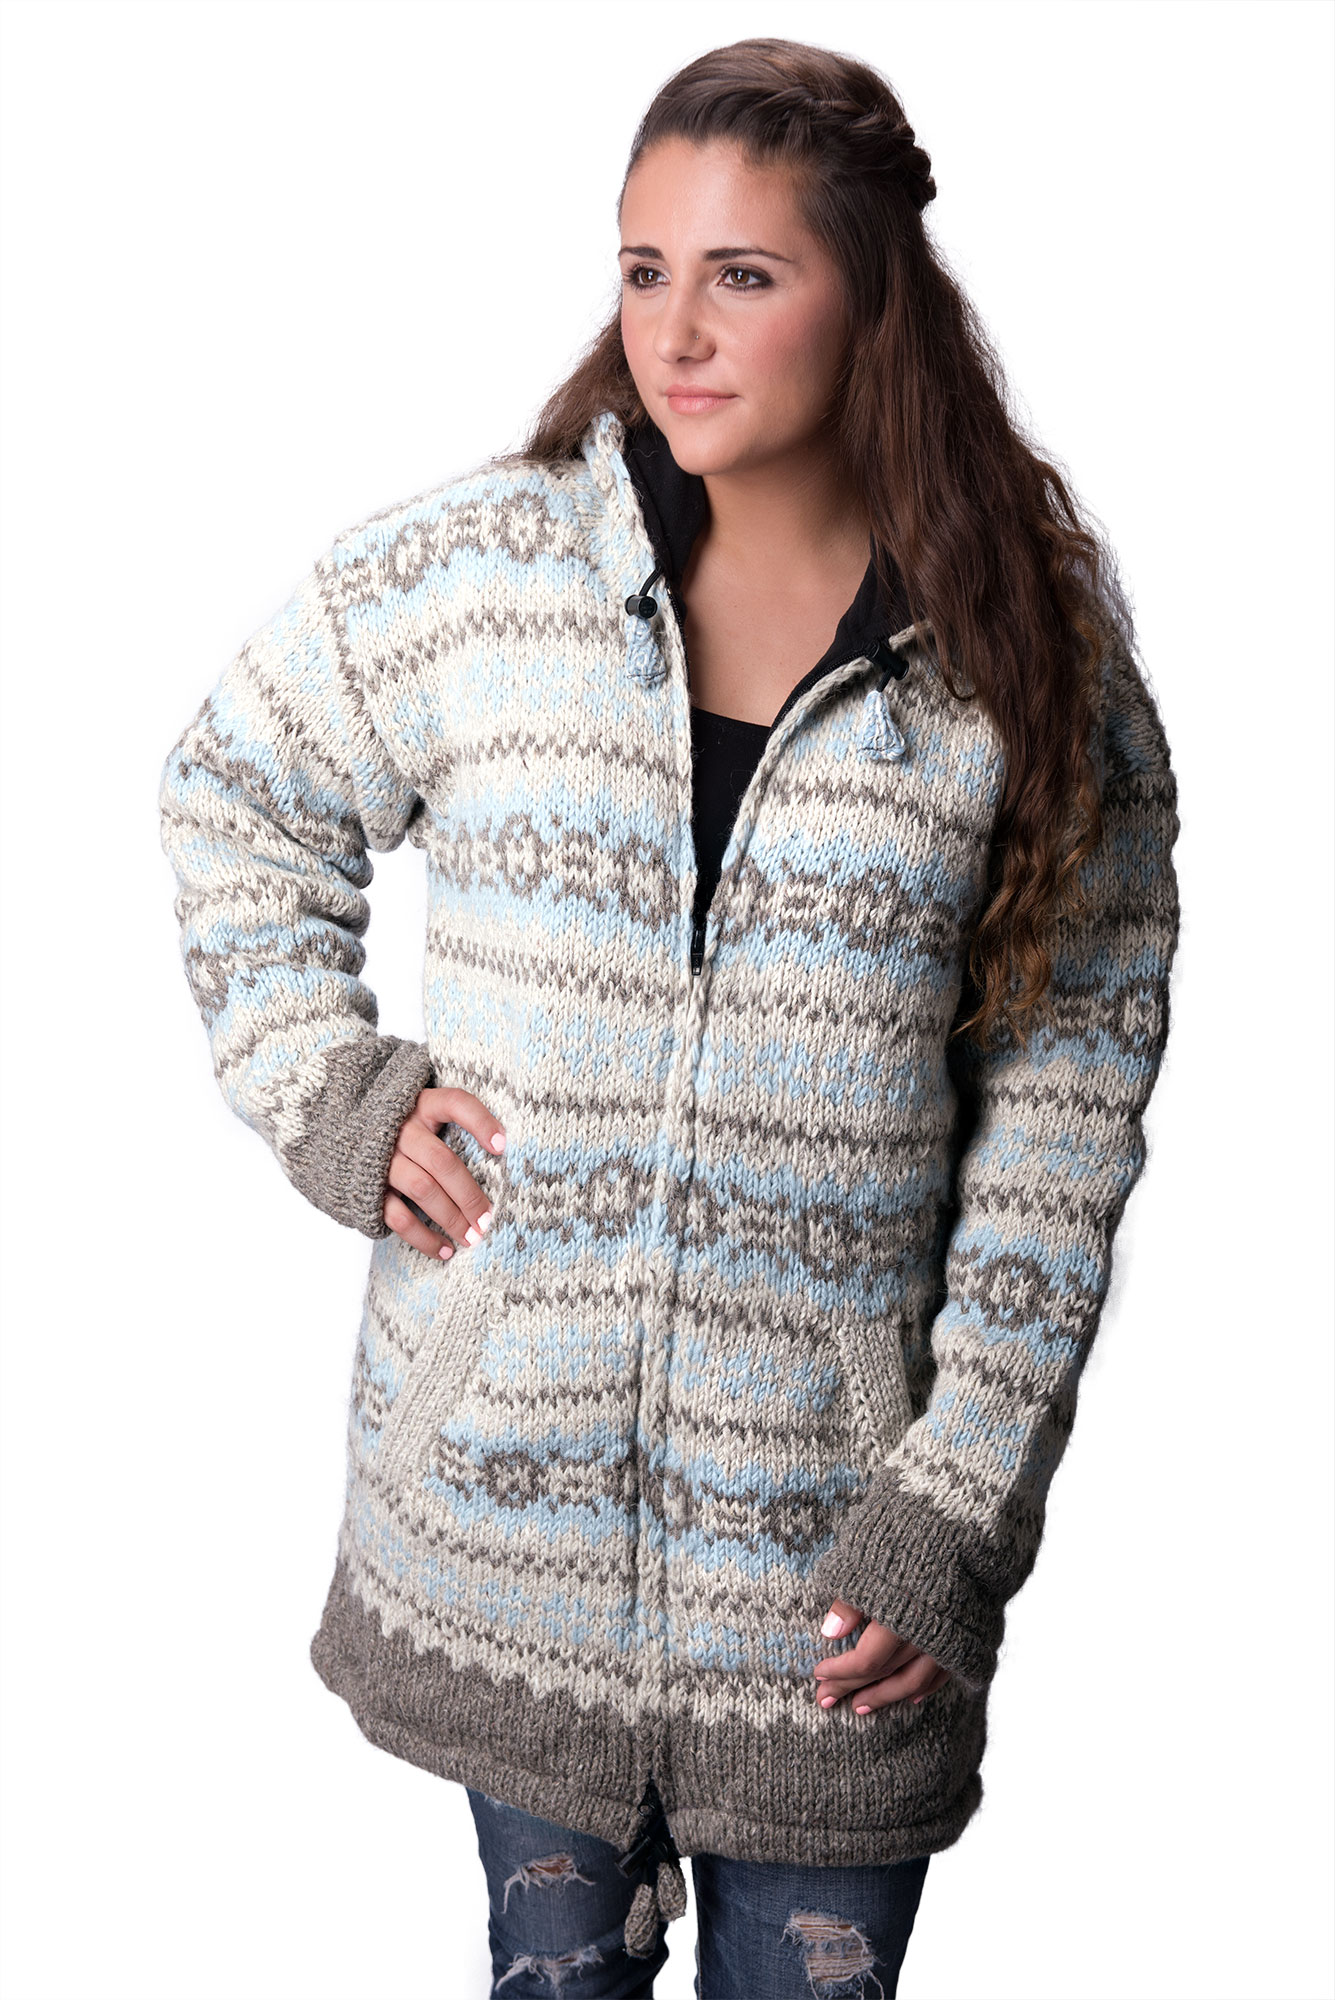 Wool Vintage Himalayan Mountain Jacket – Long Length Baby Blue & Natural